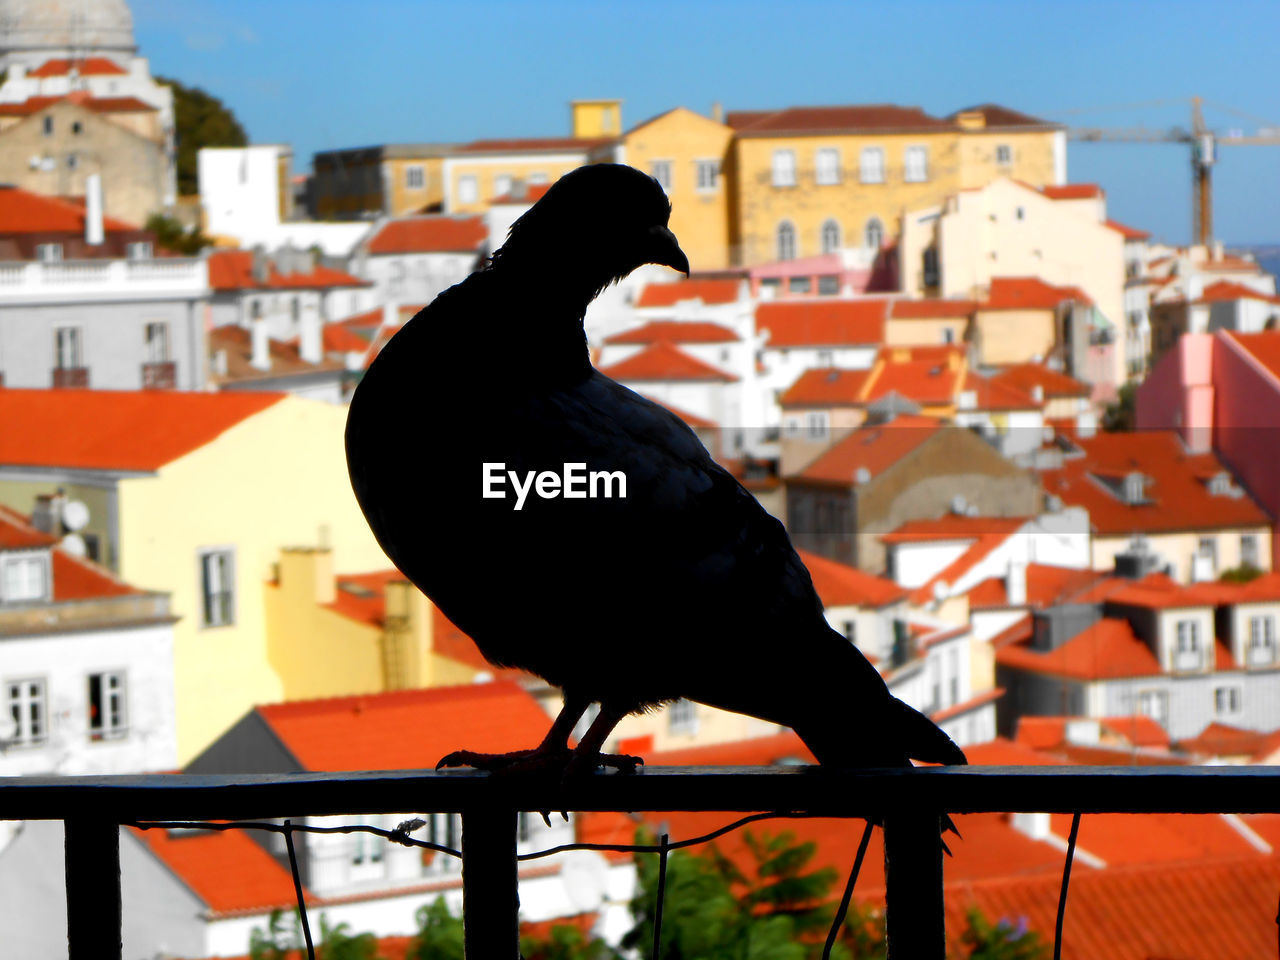 bird, one animal, animal themes, vertebrate, architecture, built structure, animal wildlife, animal, building exterior, animals in the wild, perching, focus on foreground, building, nature, day, no people, city, railing, sky, outdoors